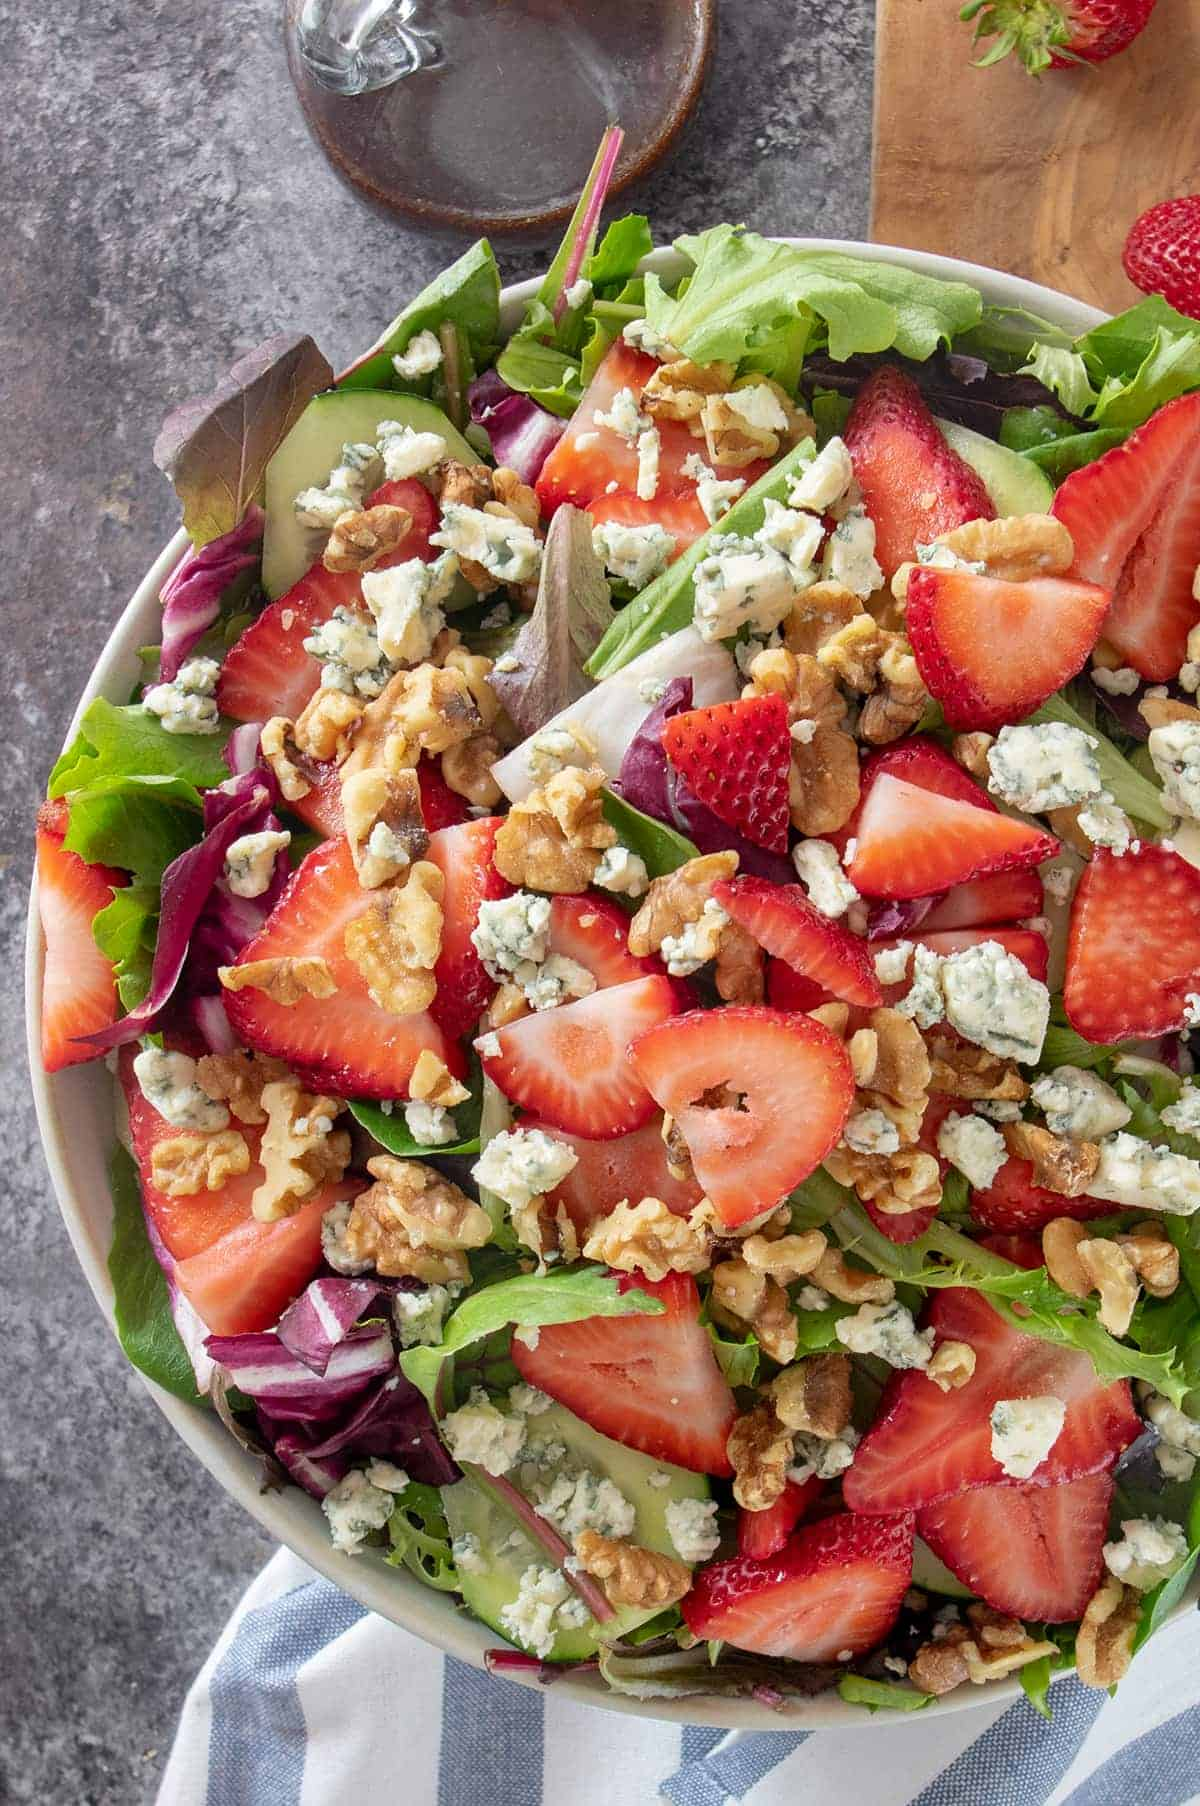 Overhead of Strawberry Spinach Salad with Raspberry Vinaigrette Dressing to show texture of toppings.